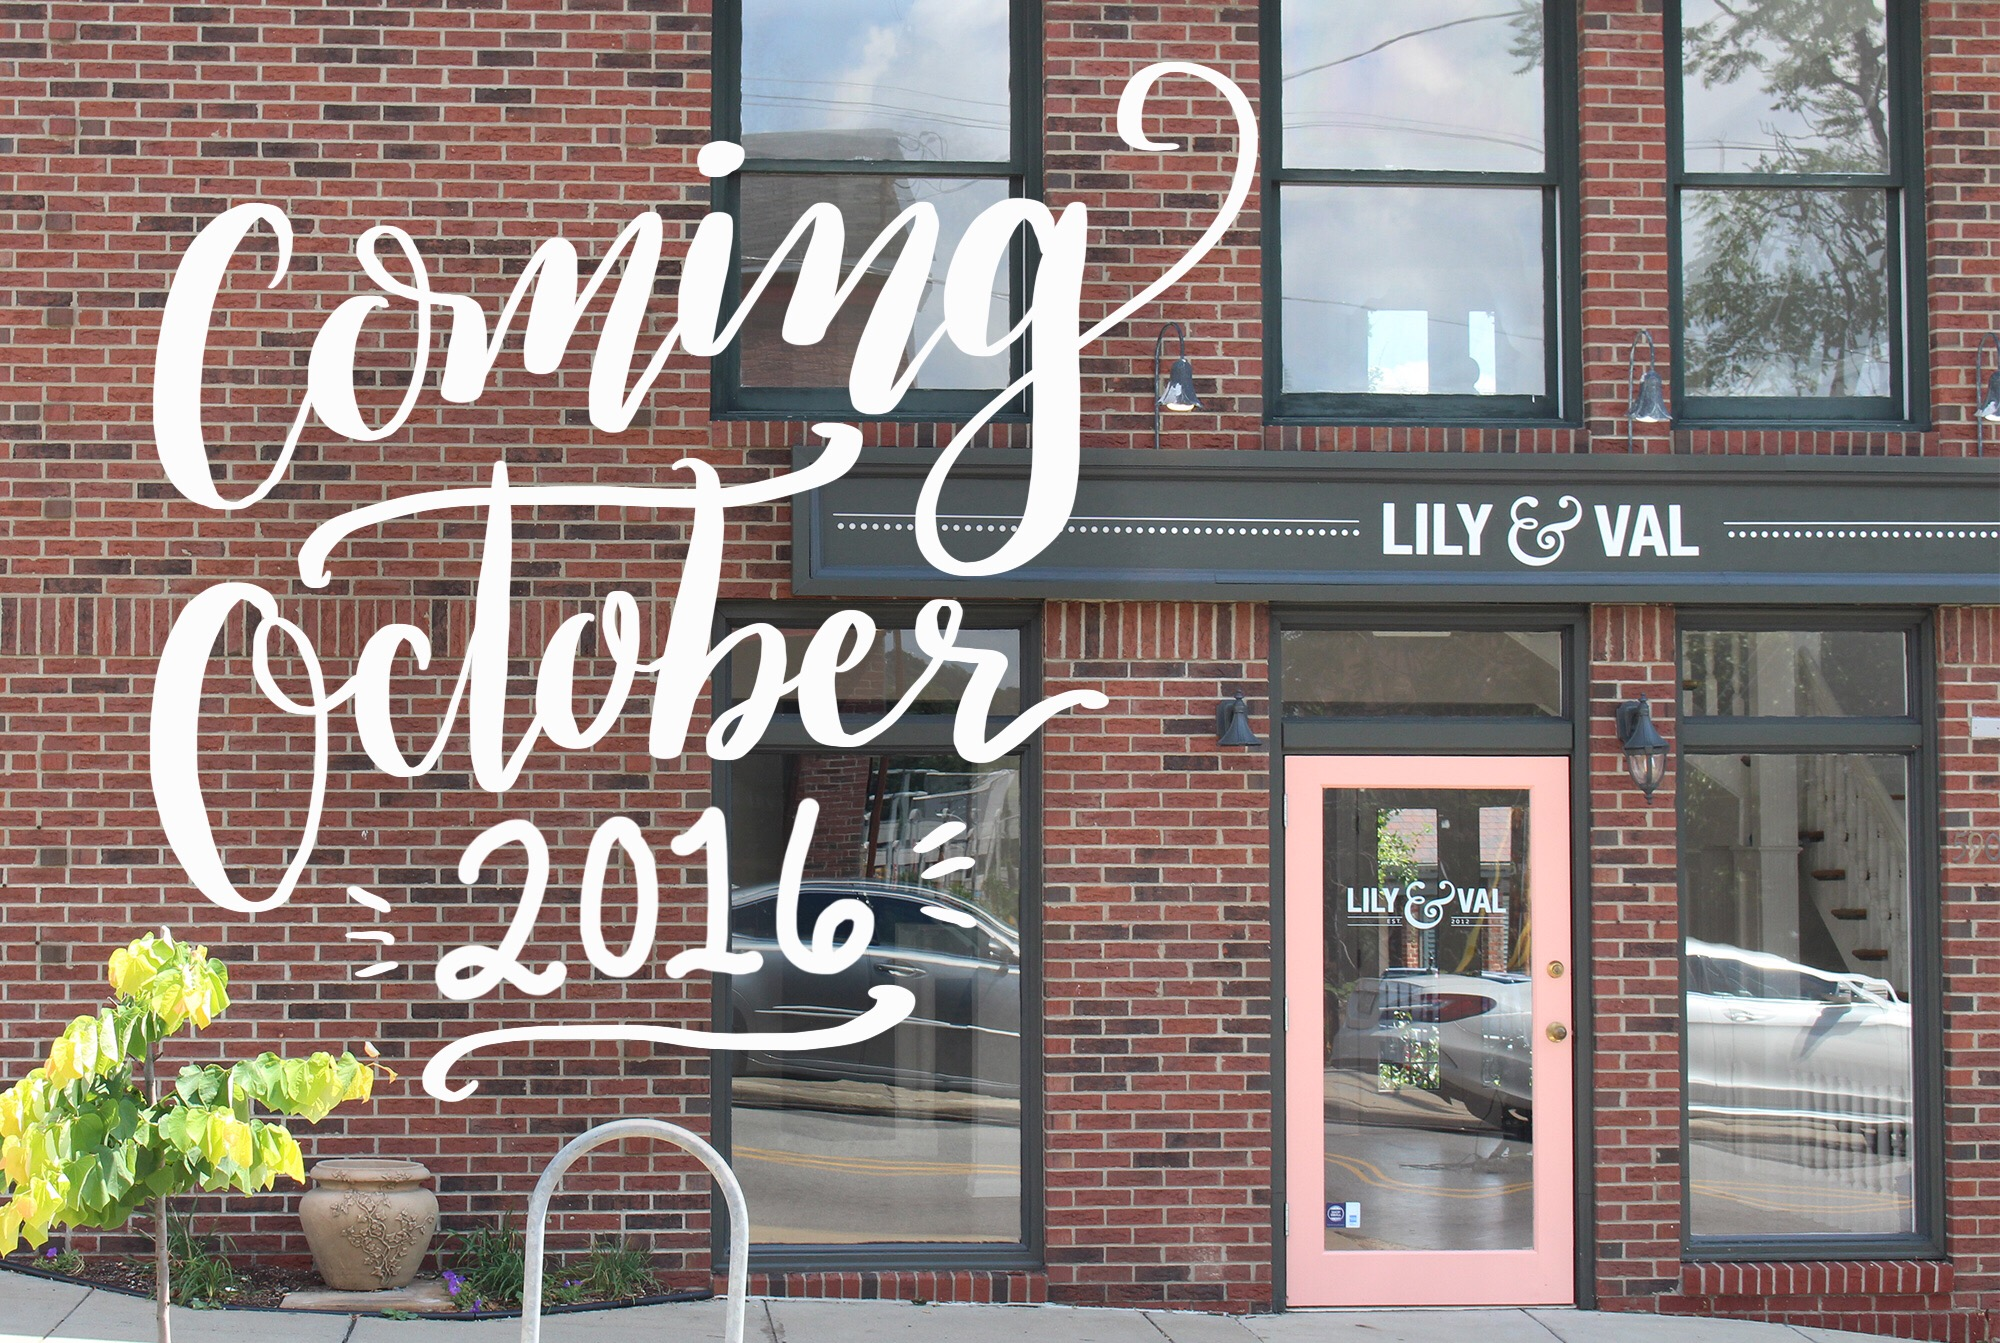 Introducing the new Lily & Val Corporate Headquarters and Flagship Store at 5900 Ellsworth Ave. Pittsburgh, PA